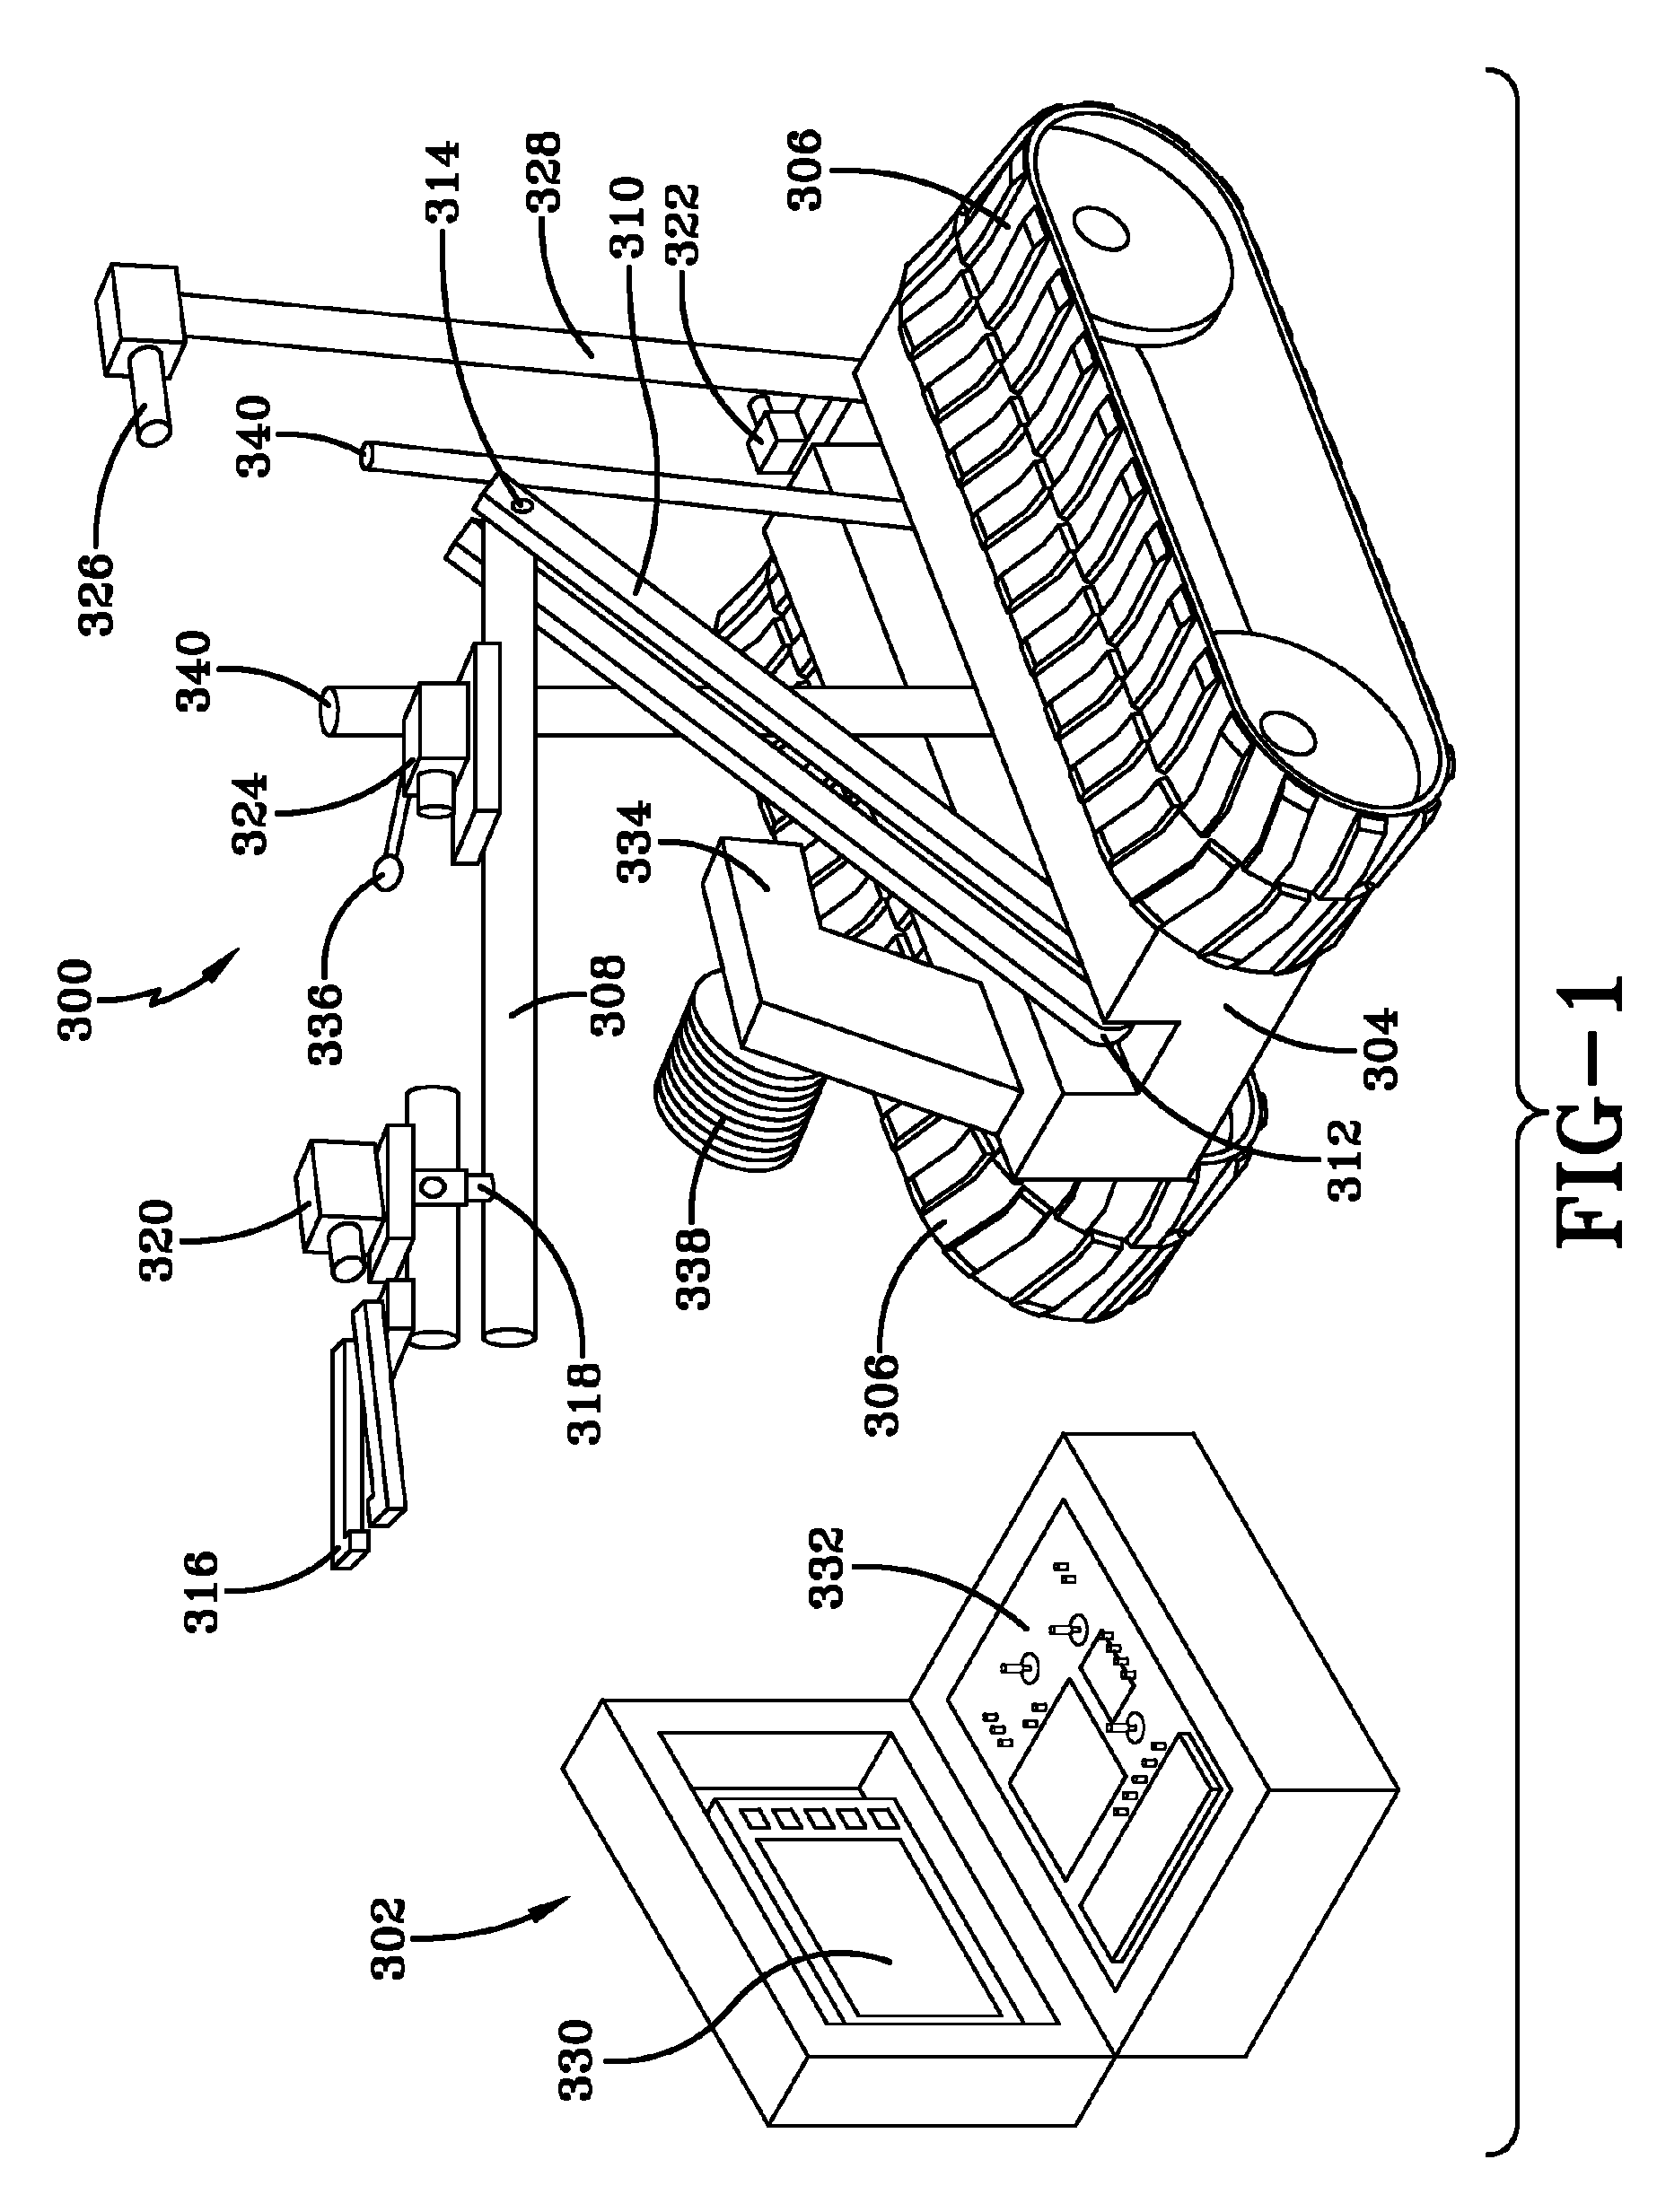 Wiring Diagram For Spotlights On A Car